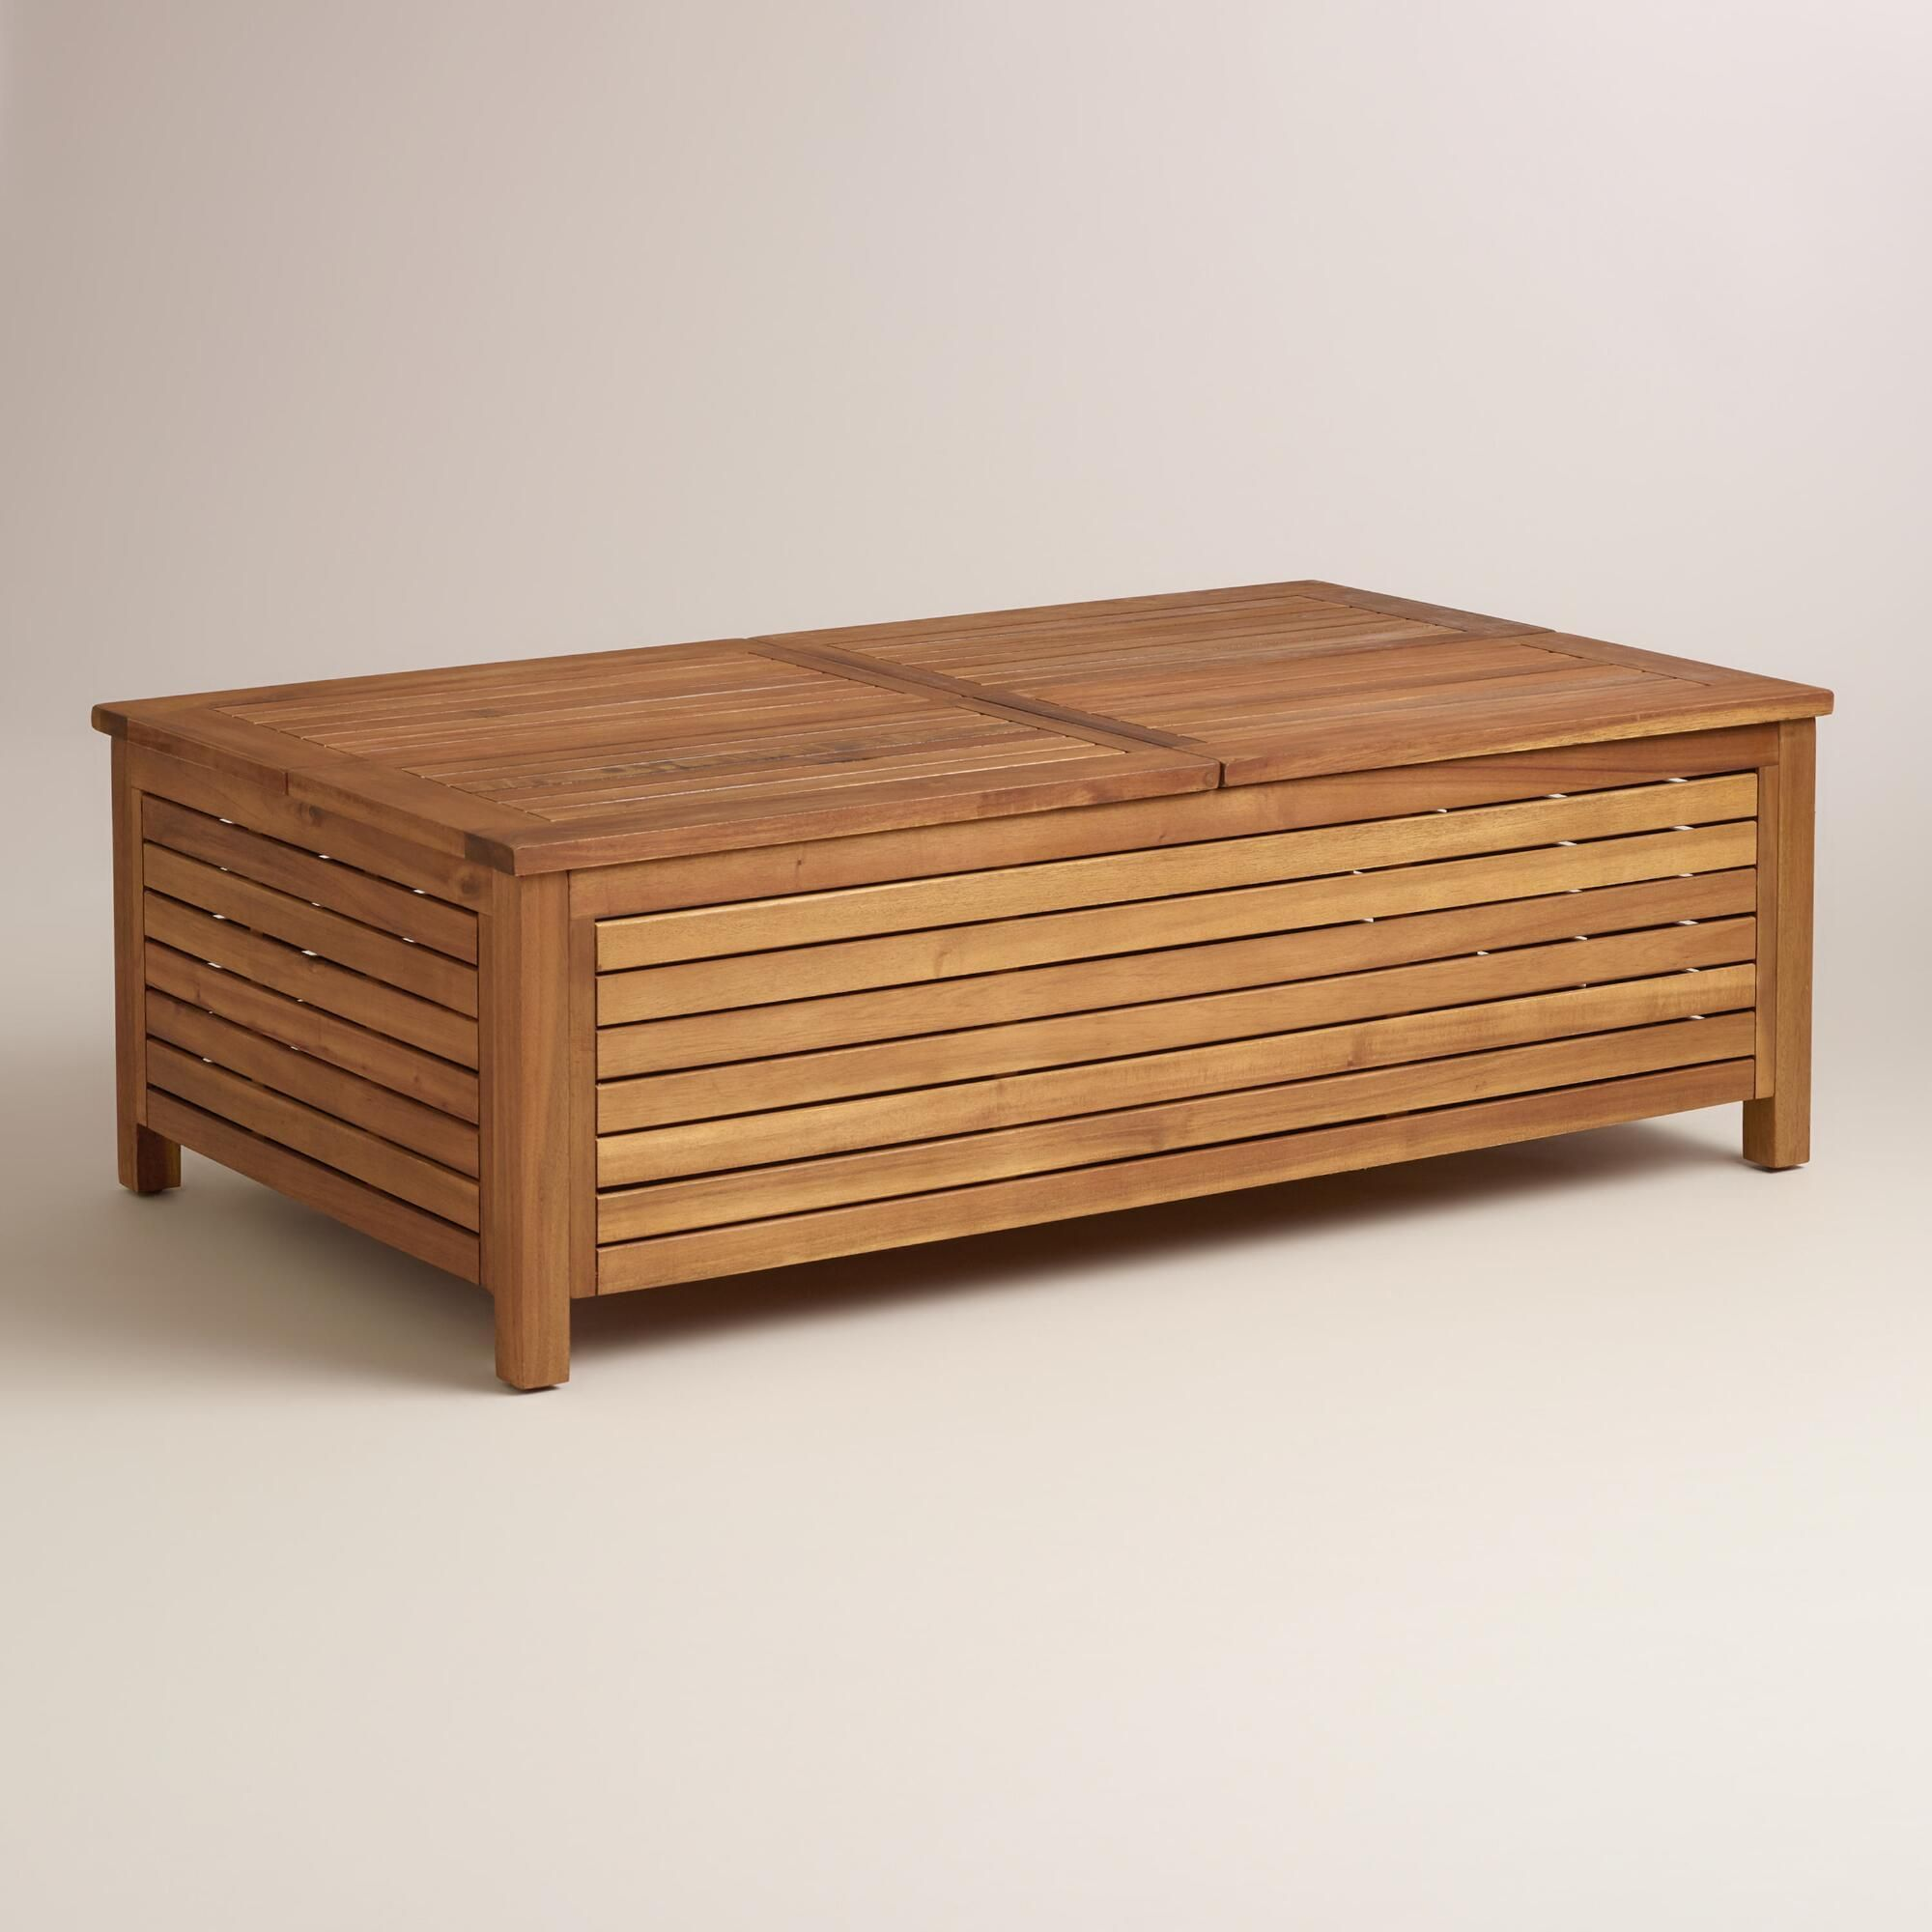 With a chunky slatted profile this multifunctional coffee table